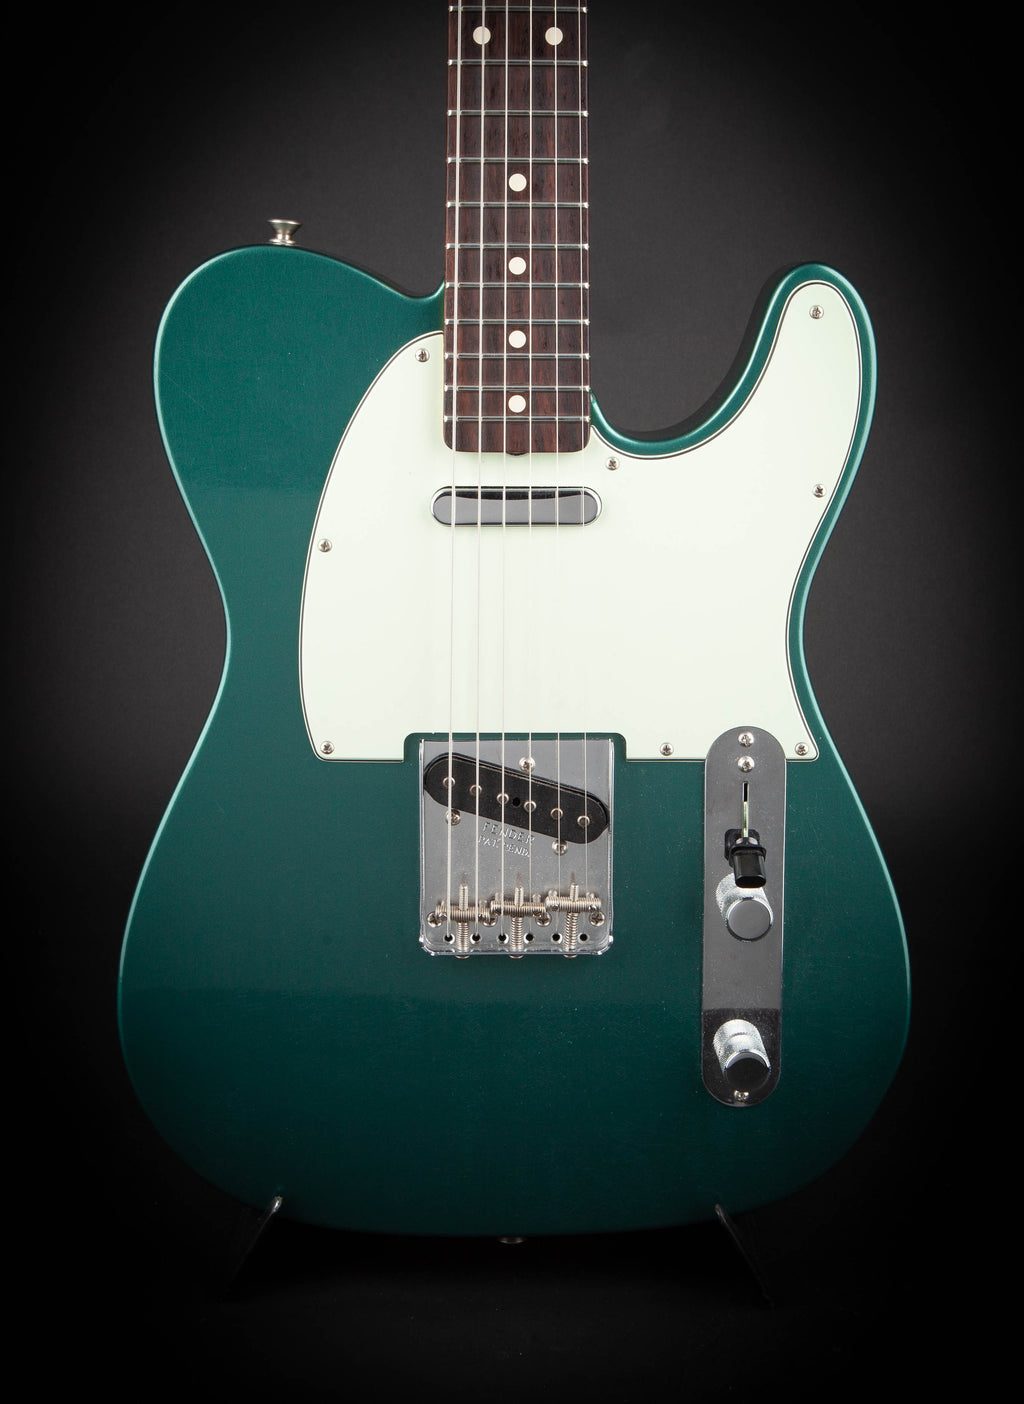 Fender Custom Shop: 60 Telecaster Sherwood Green #R92190